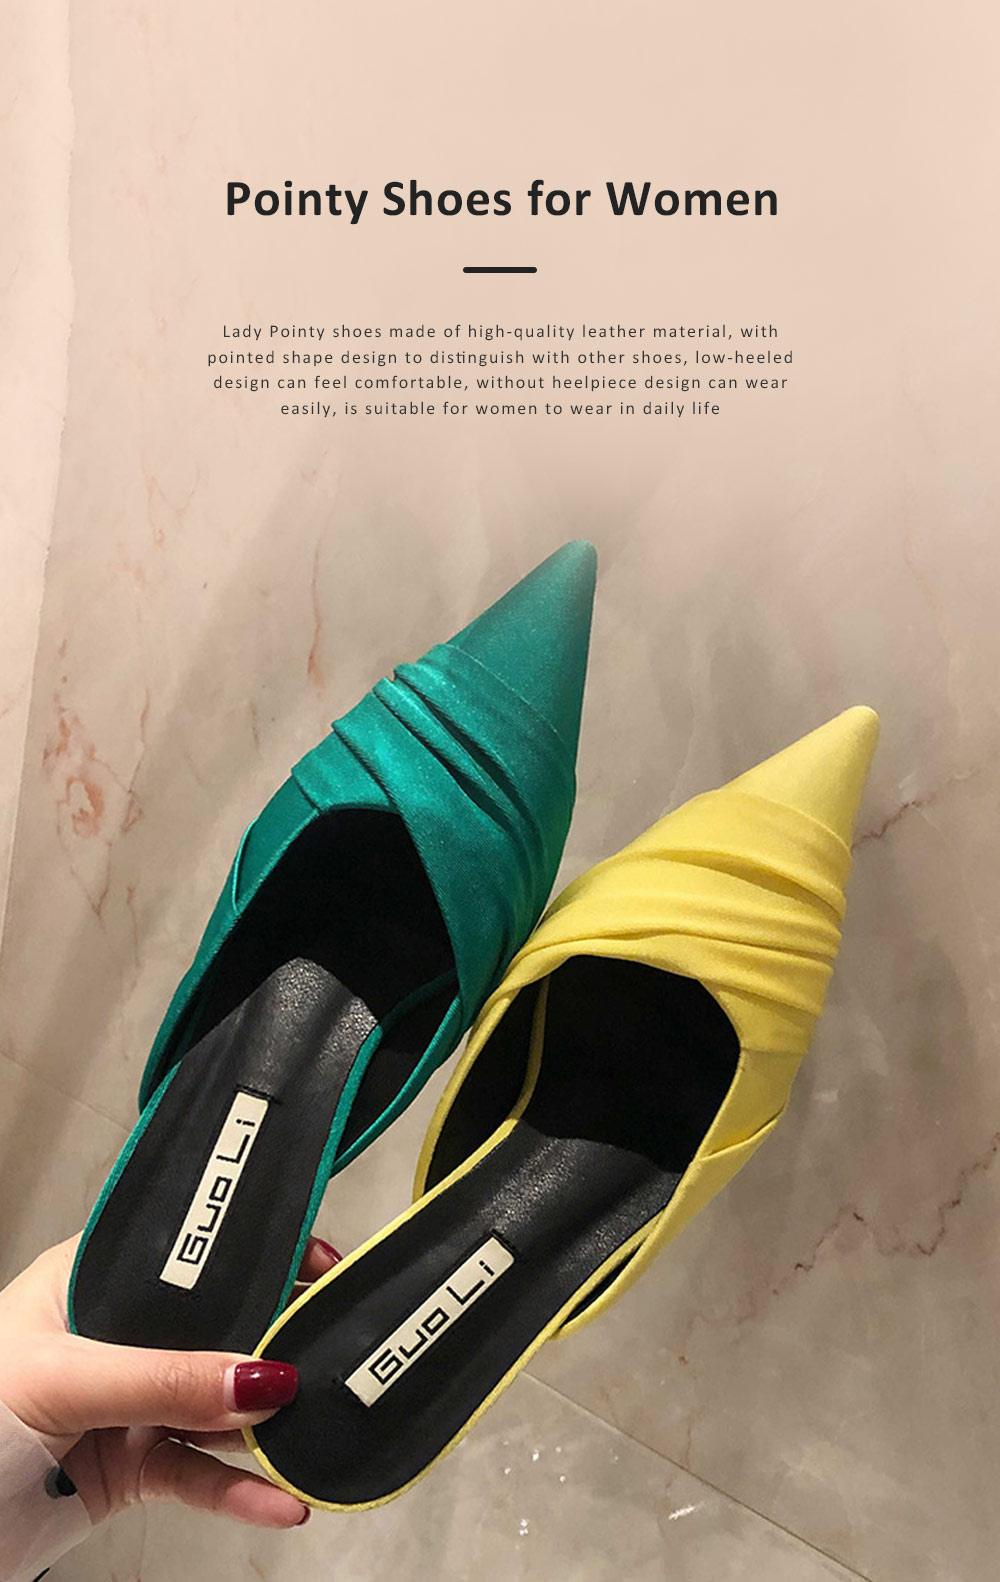 Pointy Shoes for Women, Low-heeled Waterproof Platform Sandals, Leather Material without Heelpiece Slippers 0